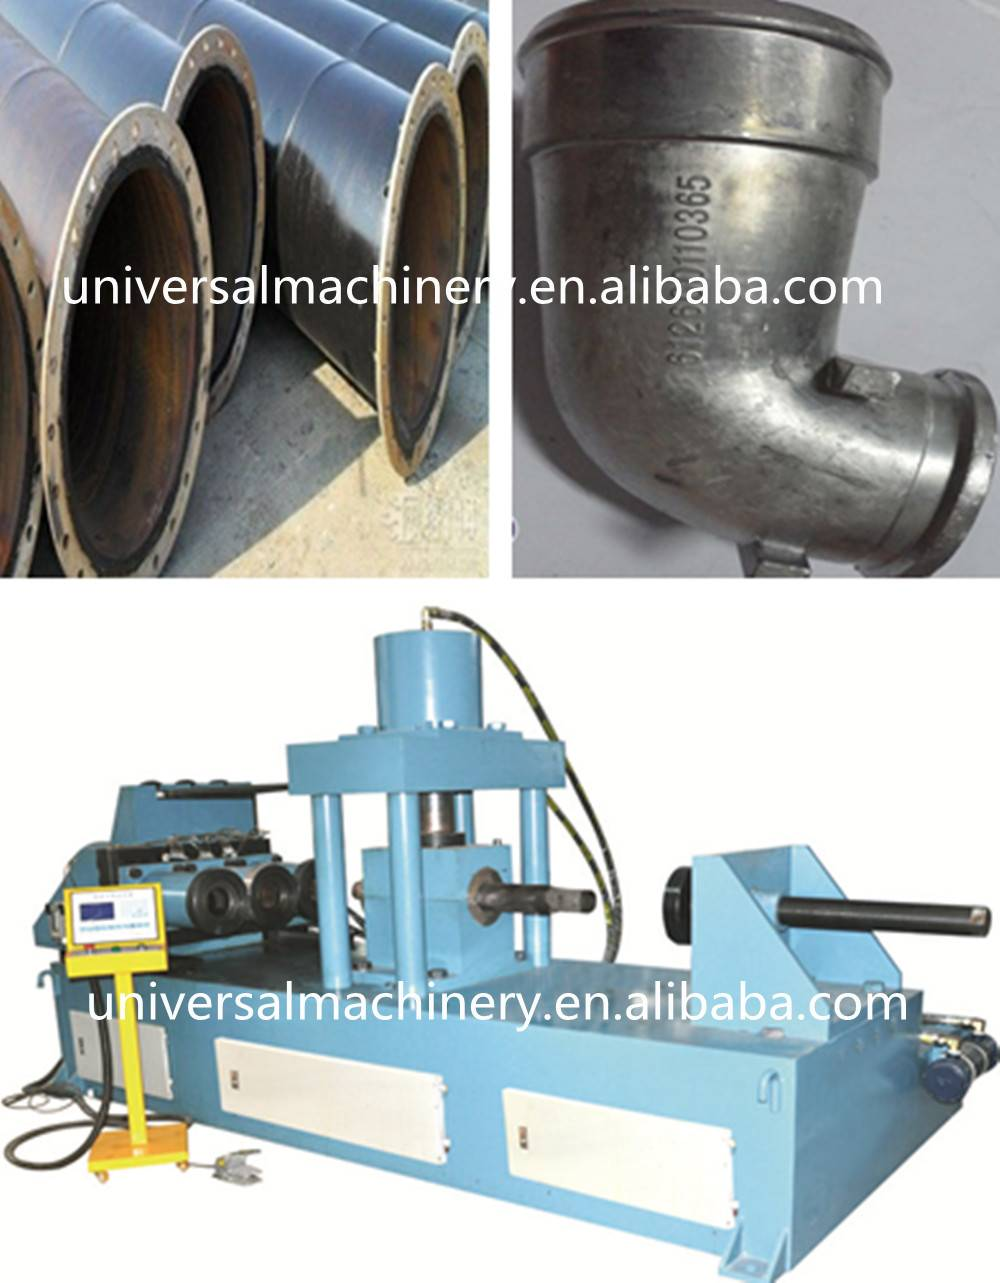 China Factory price Pipe Expander for Expanding Reducing Flanging